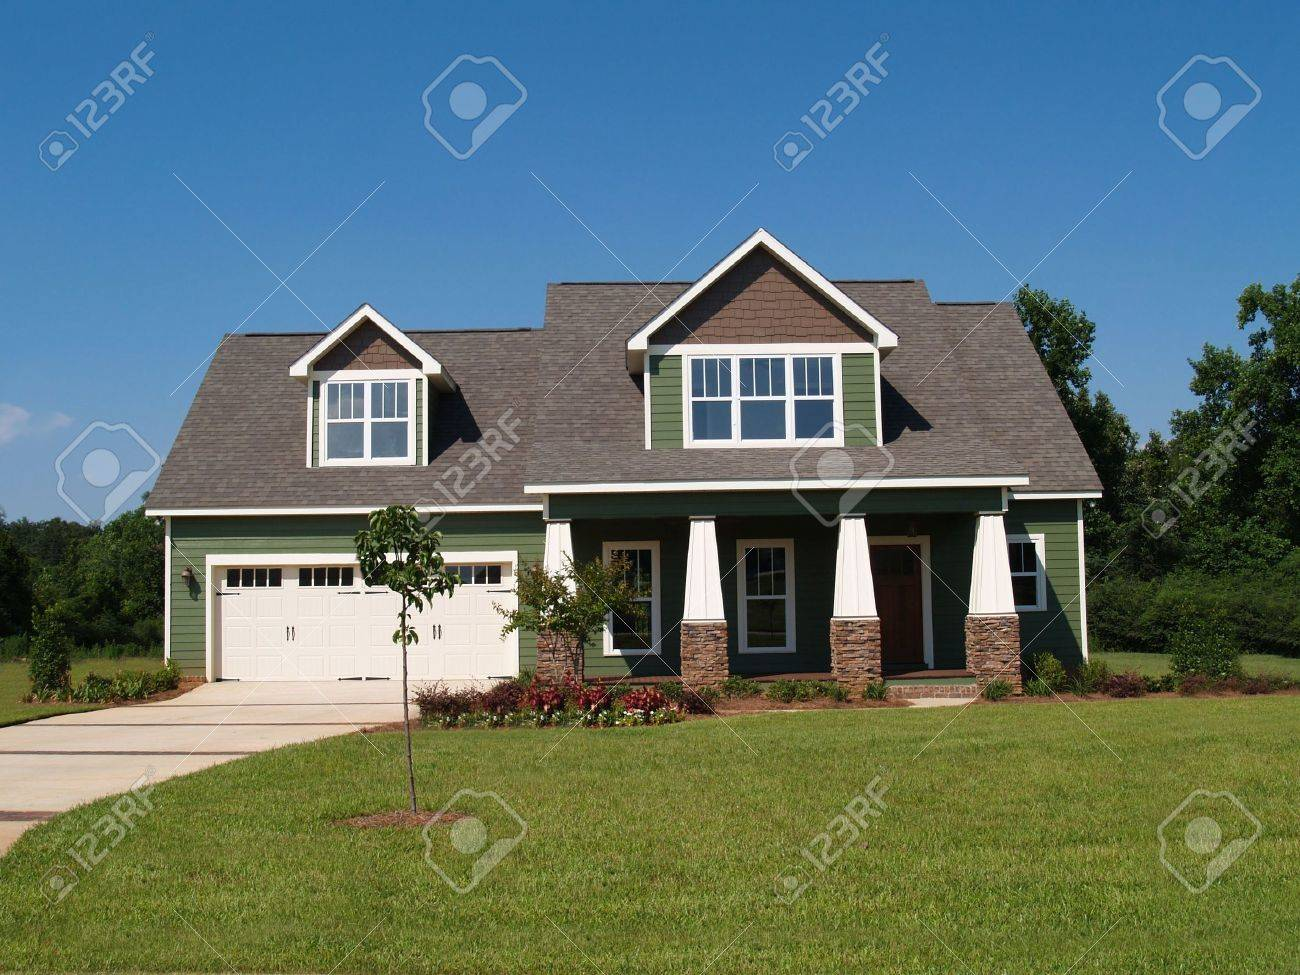 Two story residential home board siding on the facade. Stock Photo - 5520022